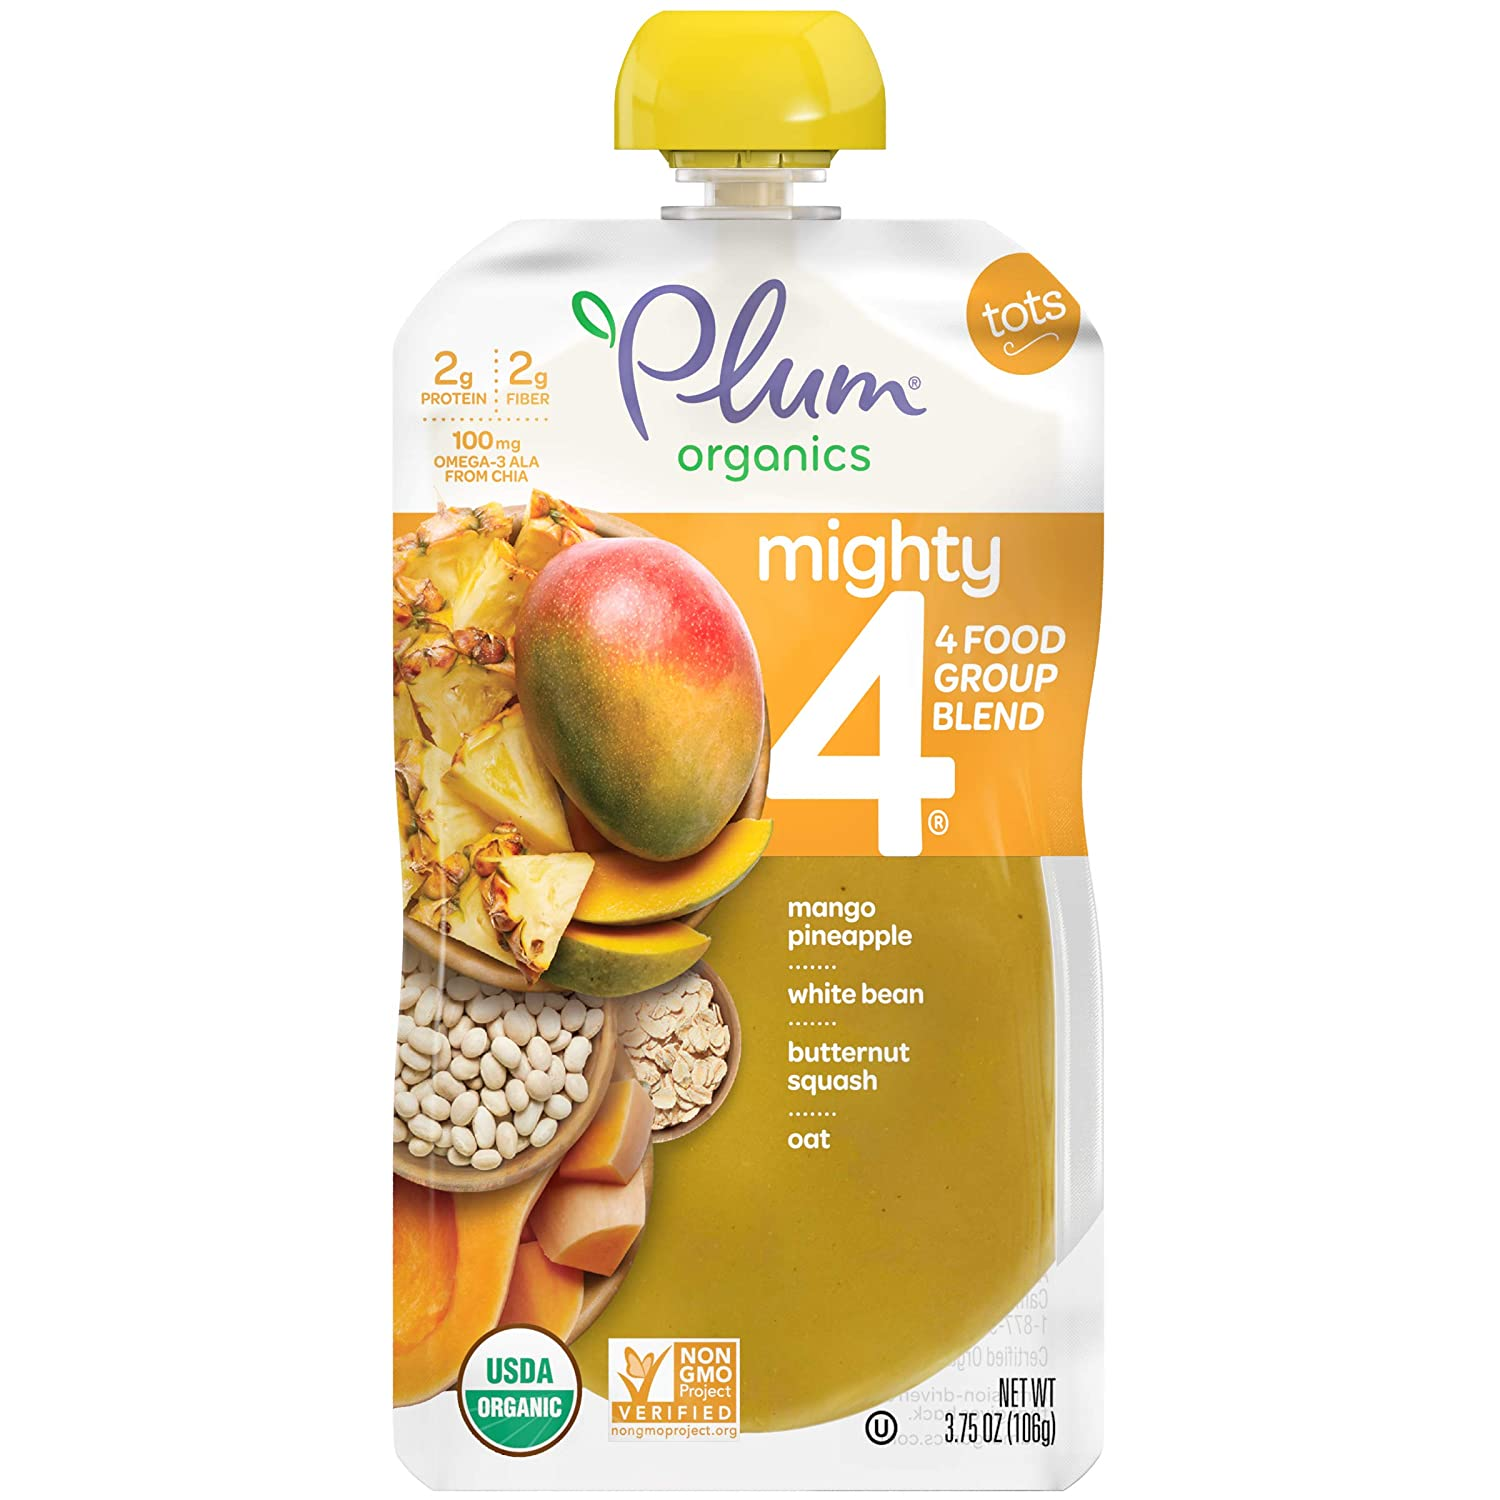 Plum Organics Mighty 4, Organic Toddler Food, Mango, Pineapple, White Bean, Butternut Squash & Oat, 3.75 Ounce (Pack of 12) (Packaging May Vary)